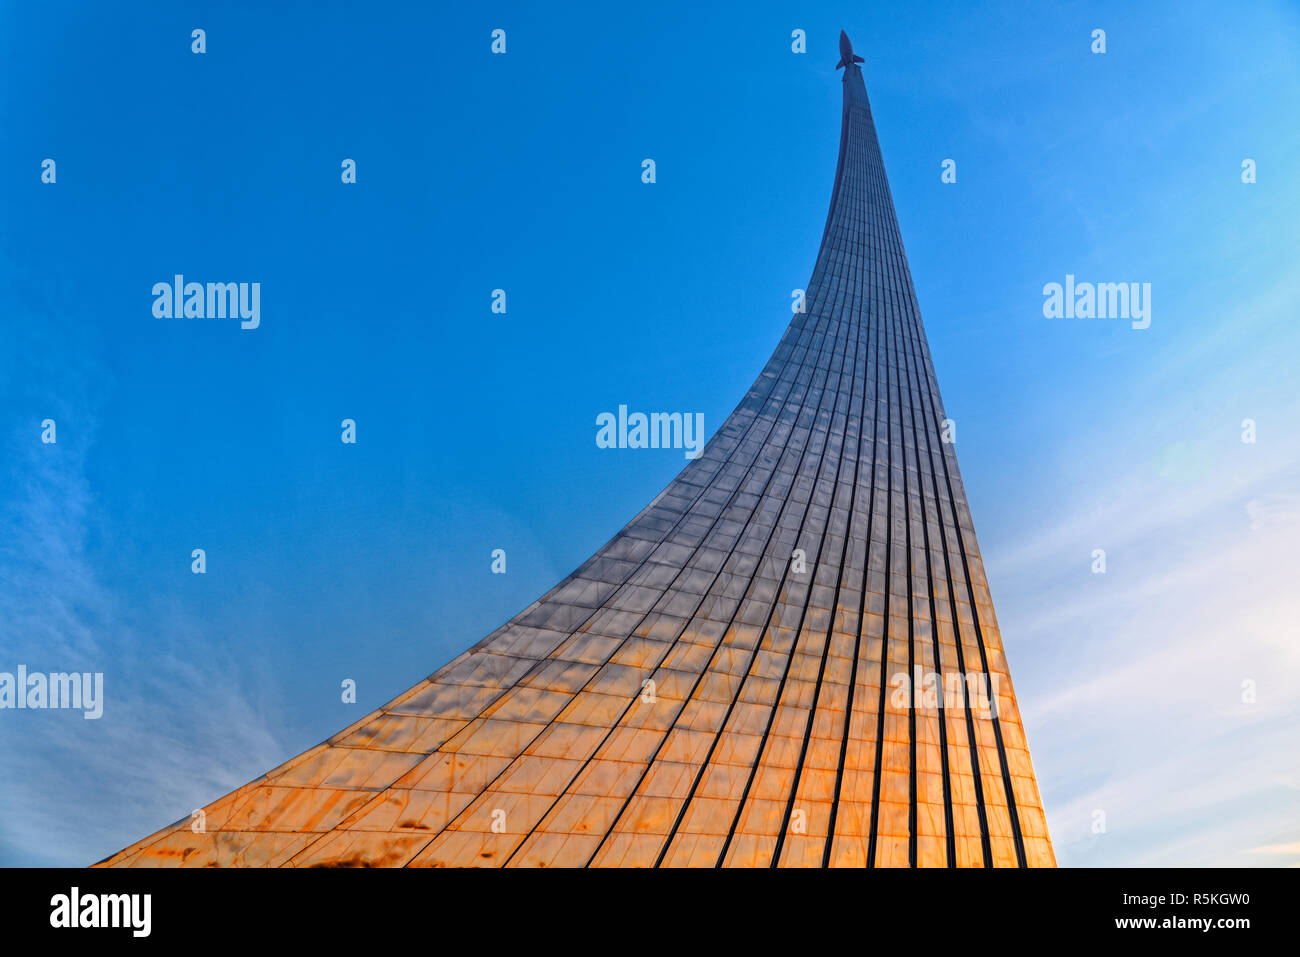 Monument to the Conquerors of Space at the Exhibition of Economic Achievements in Moscow on the background of an autumn, overcast sky with clouds. - Stock Image